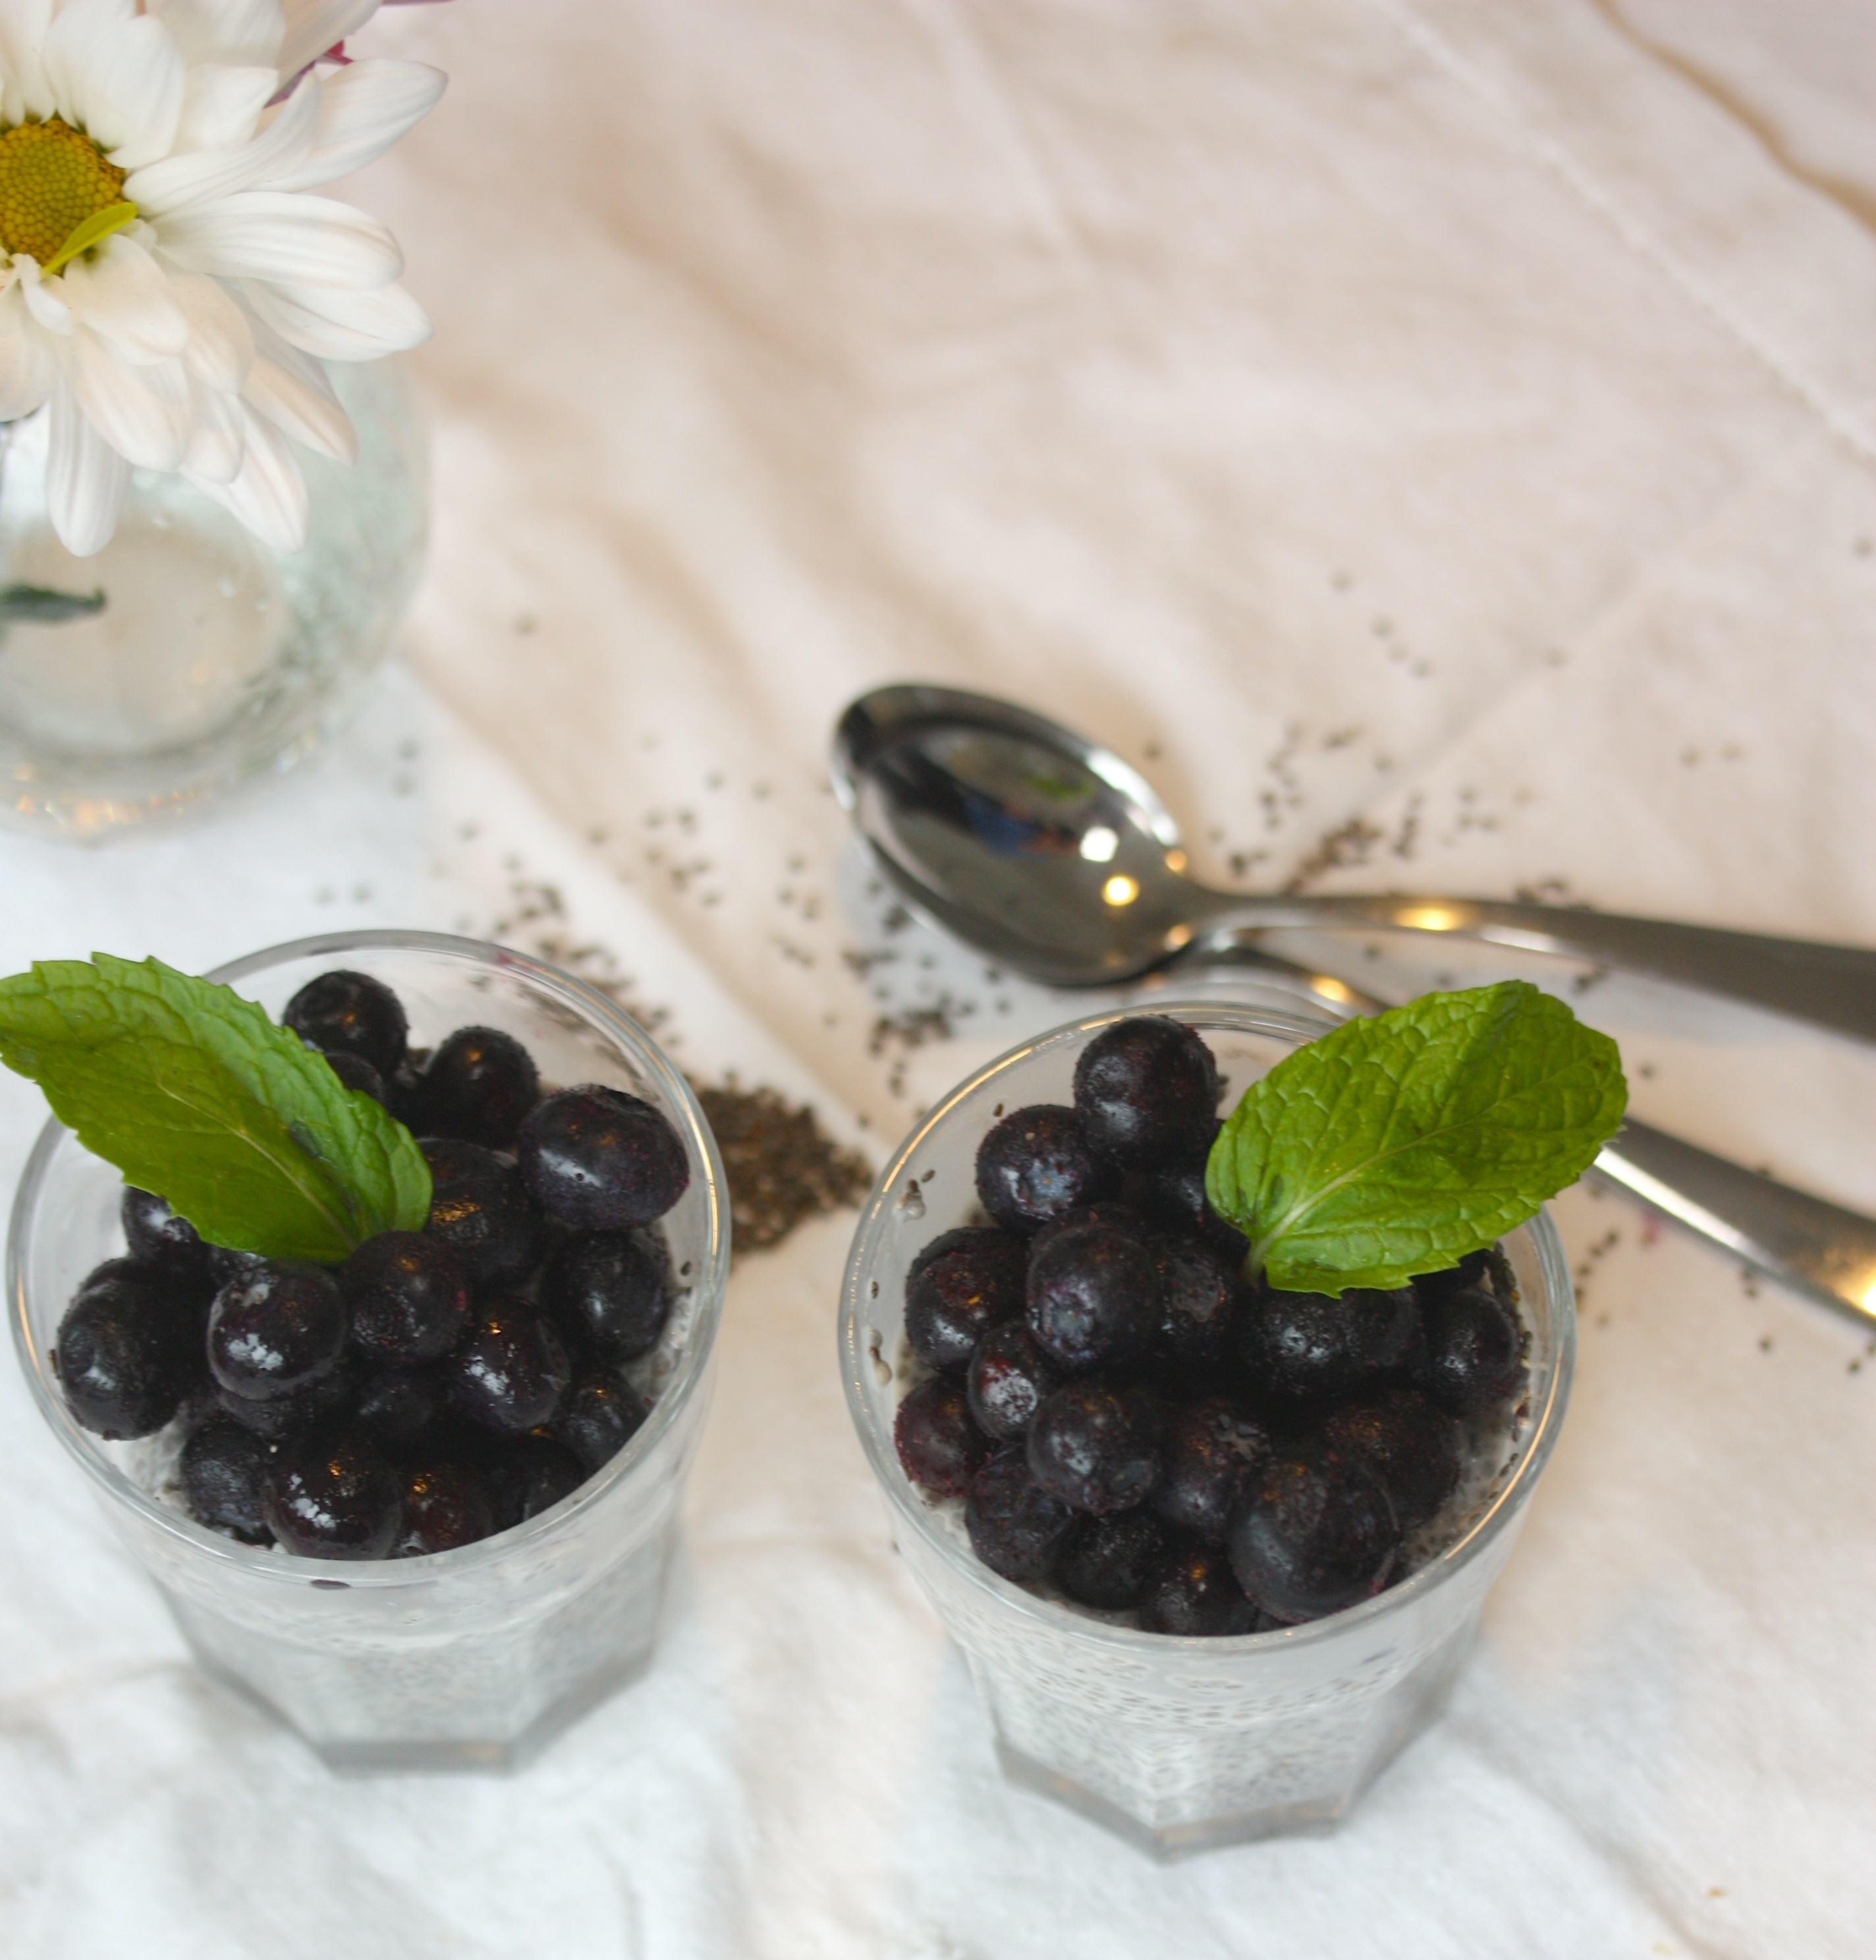 Snack Hacks: Chia Pudding with Blueberries